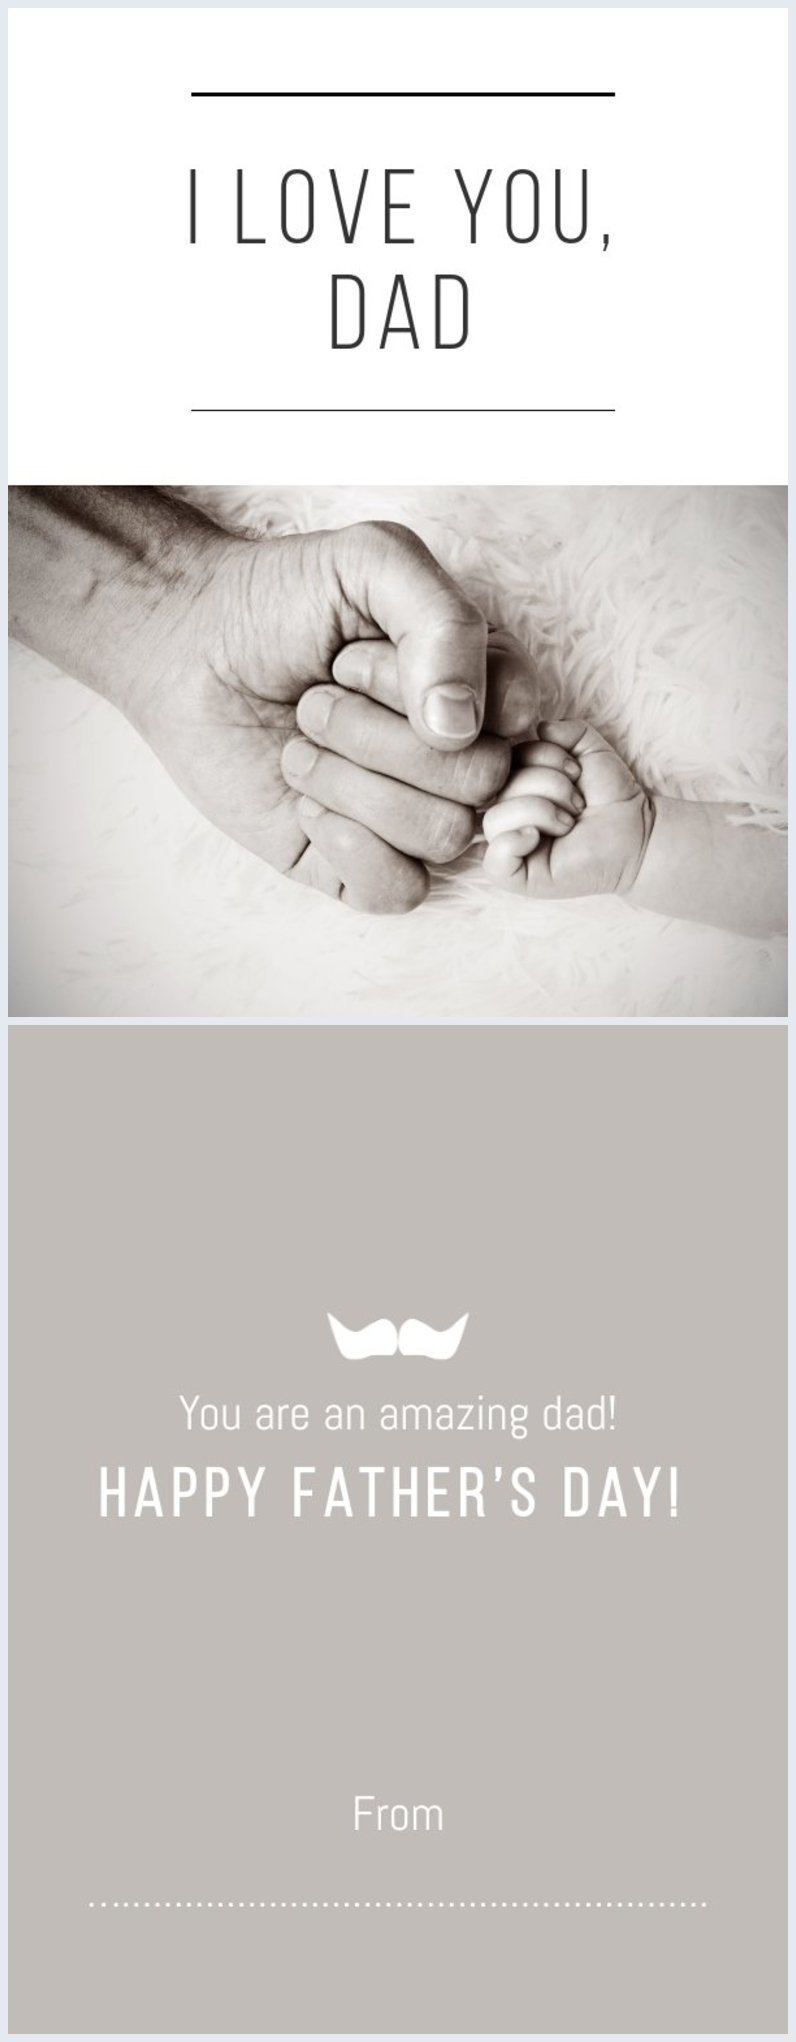 Customizable Father's Day card layout